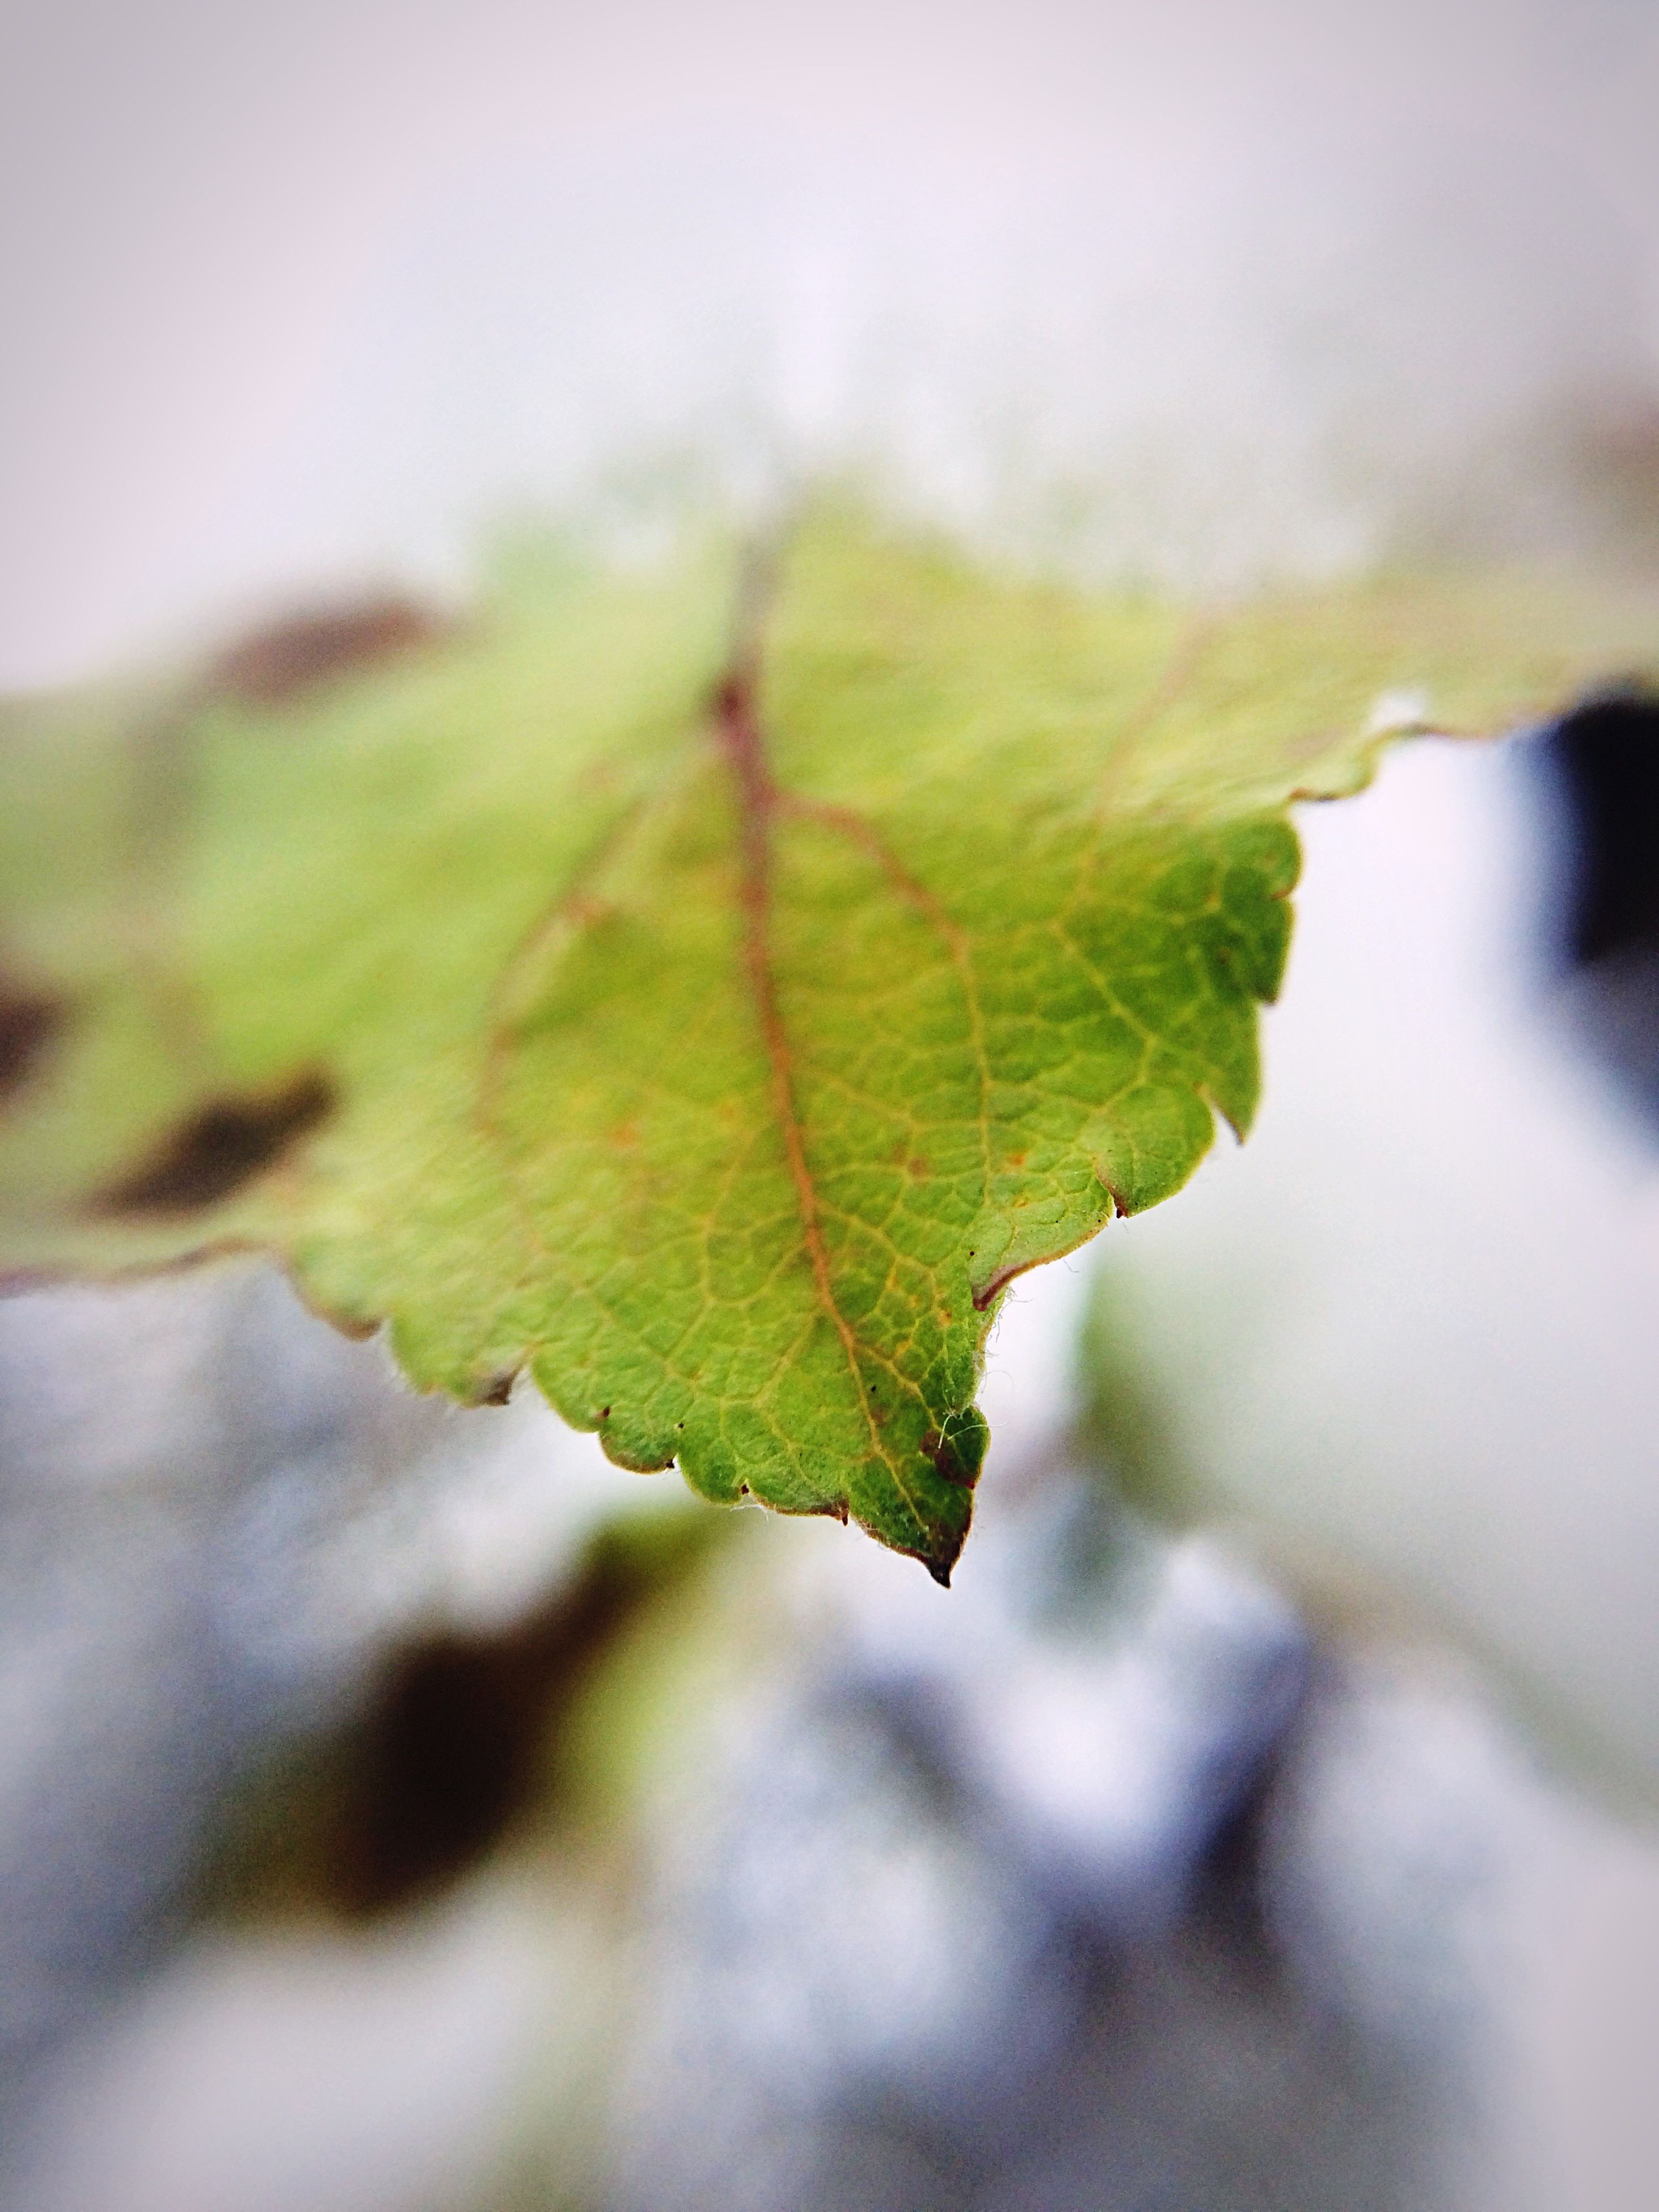 leaf, close-up, nature, leaf vein, outdoors, growth, green color, tree, no people, change, beauty in nature, autumn, day, tranquility, freshness, maple, fragility, maple leaf, sky